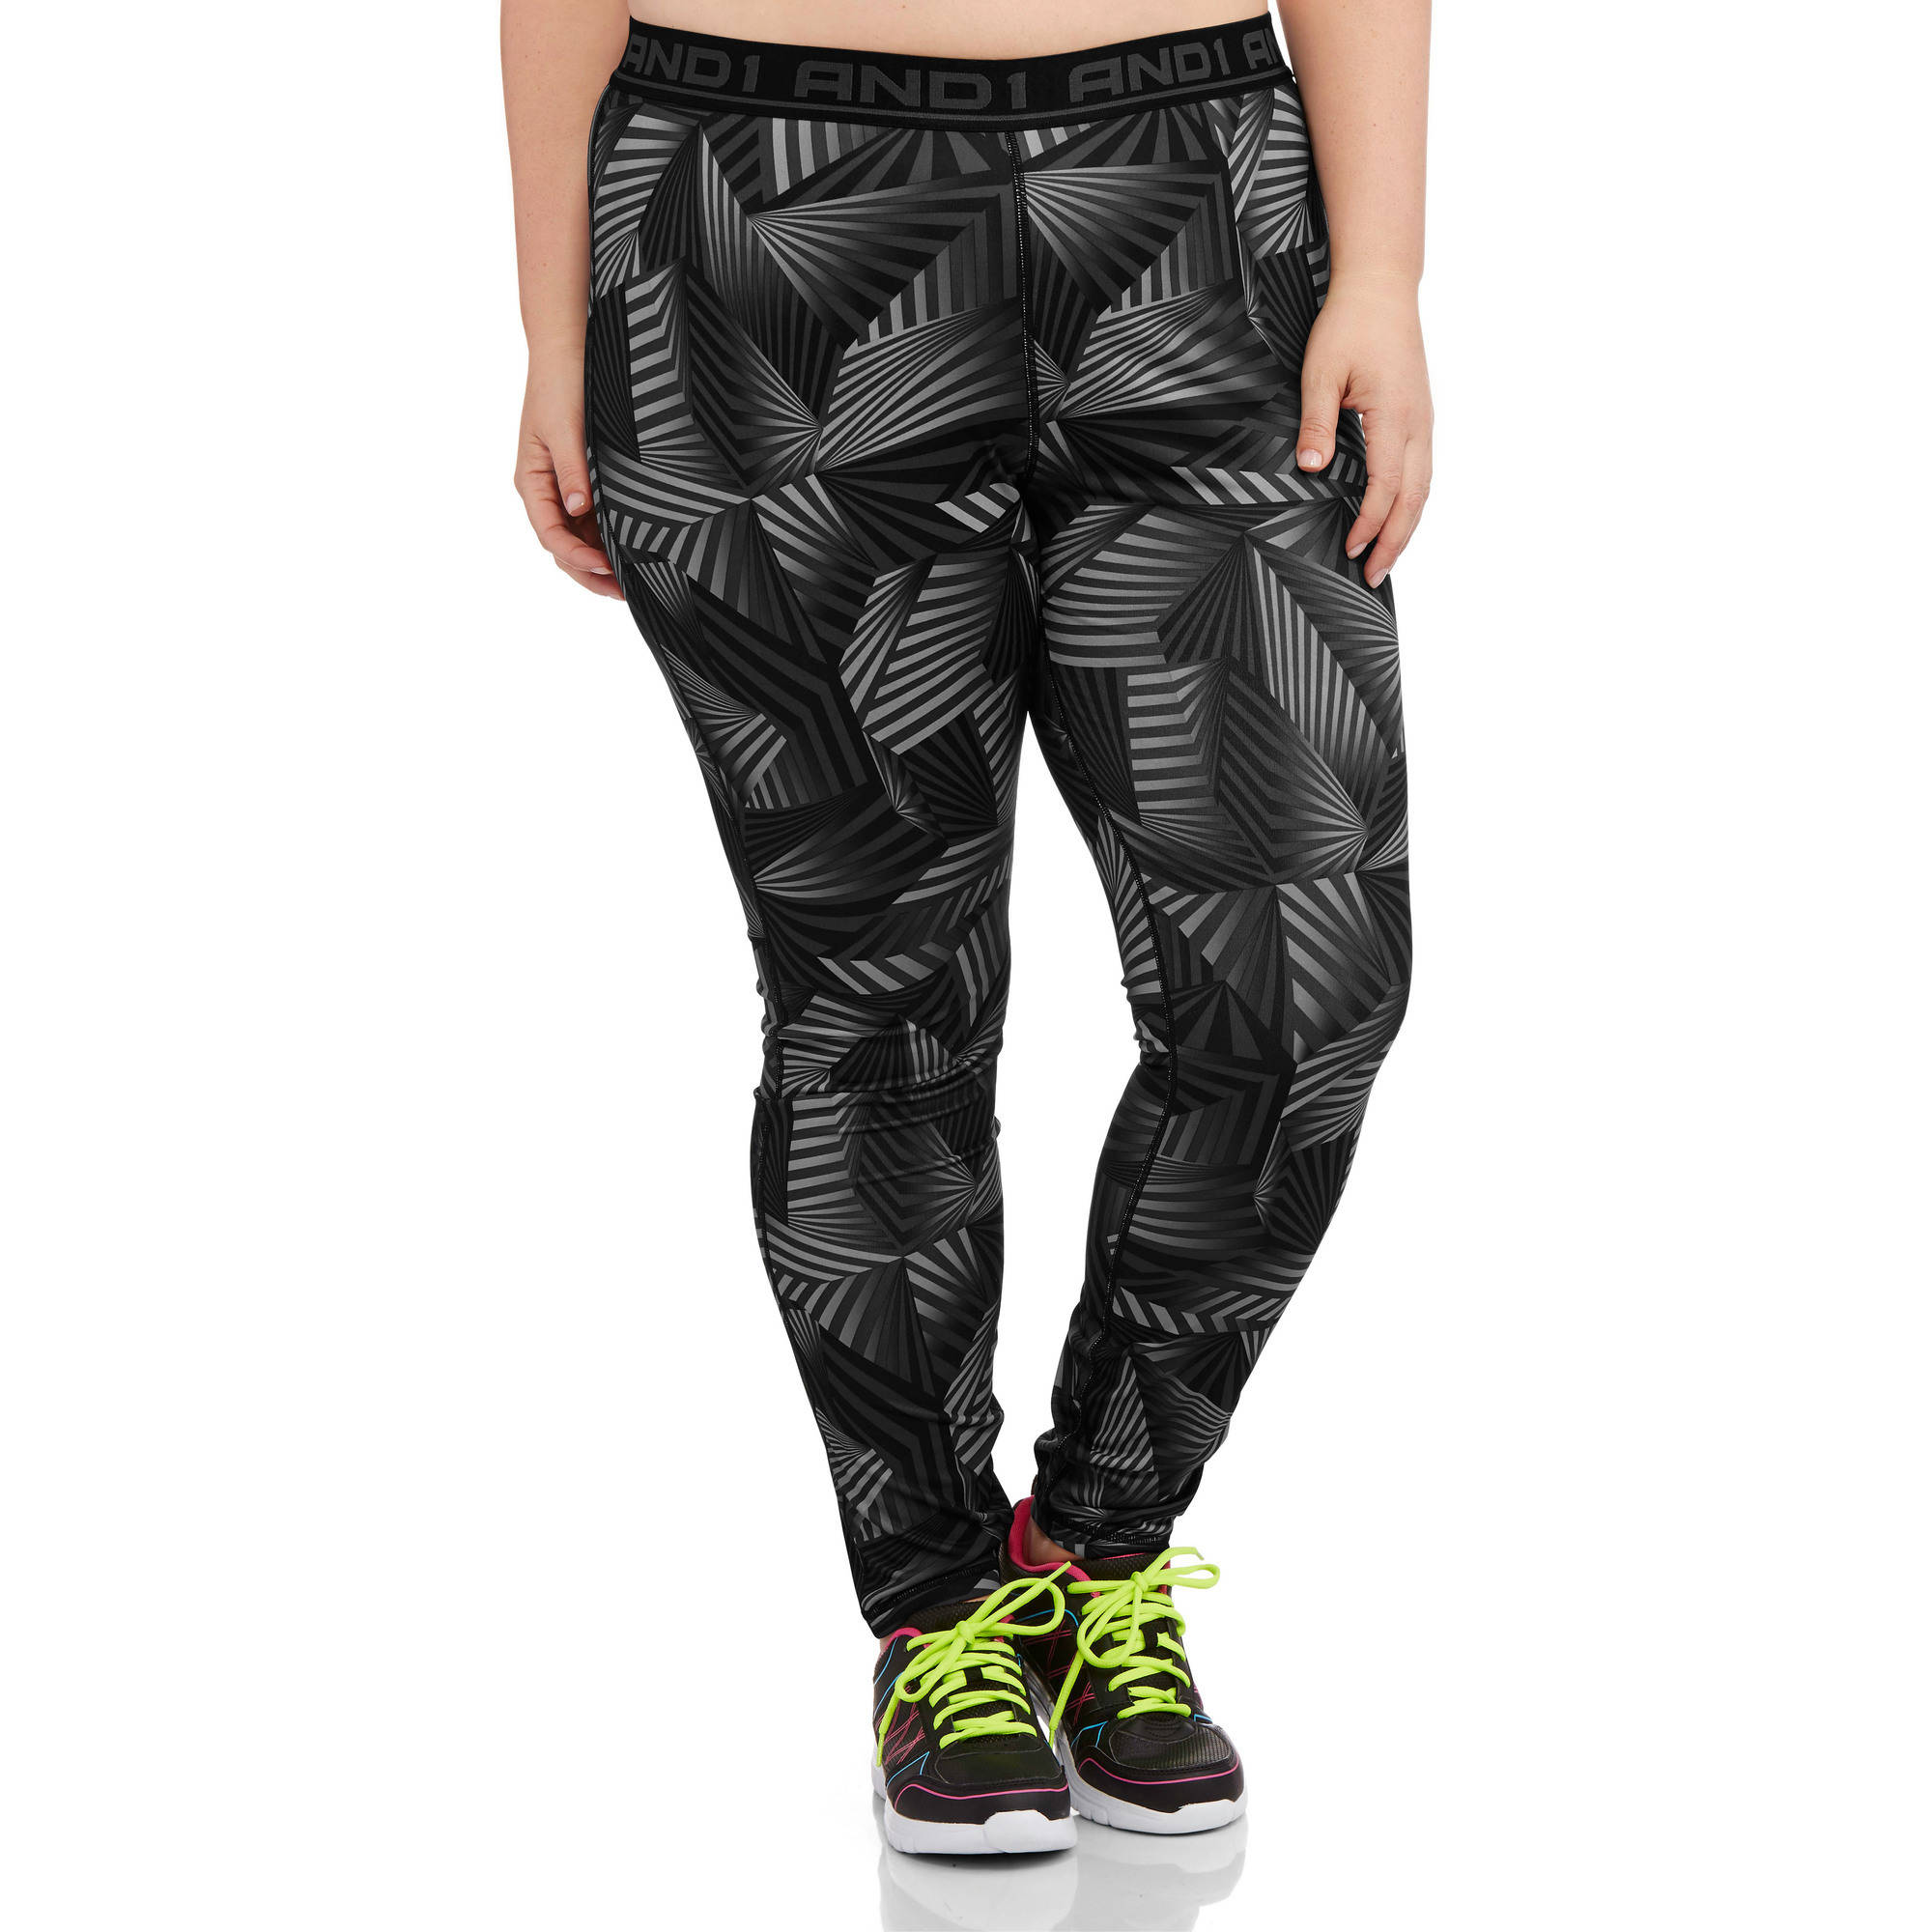 AND1 Women's Plus-Size Triumph Legging Printed Sidelines